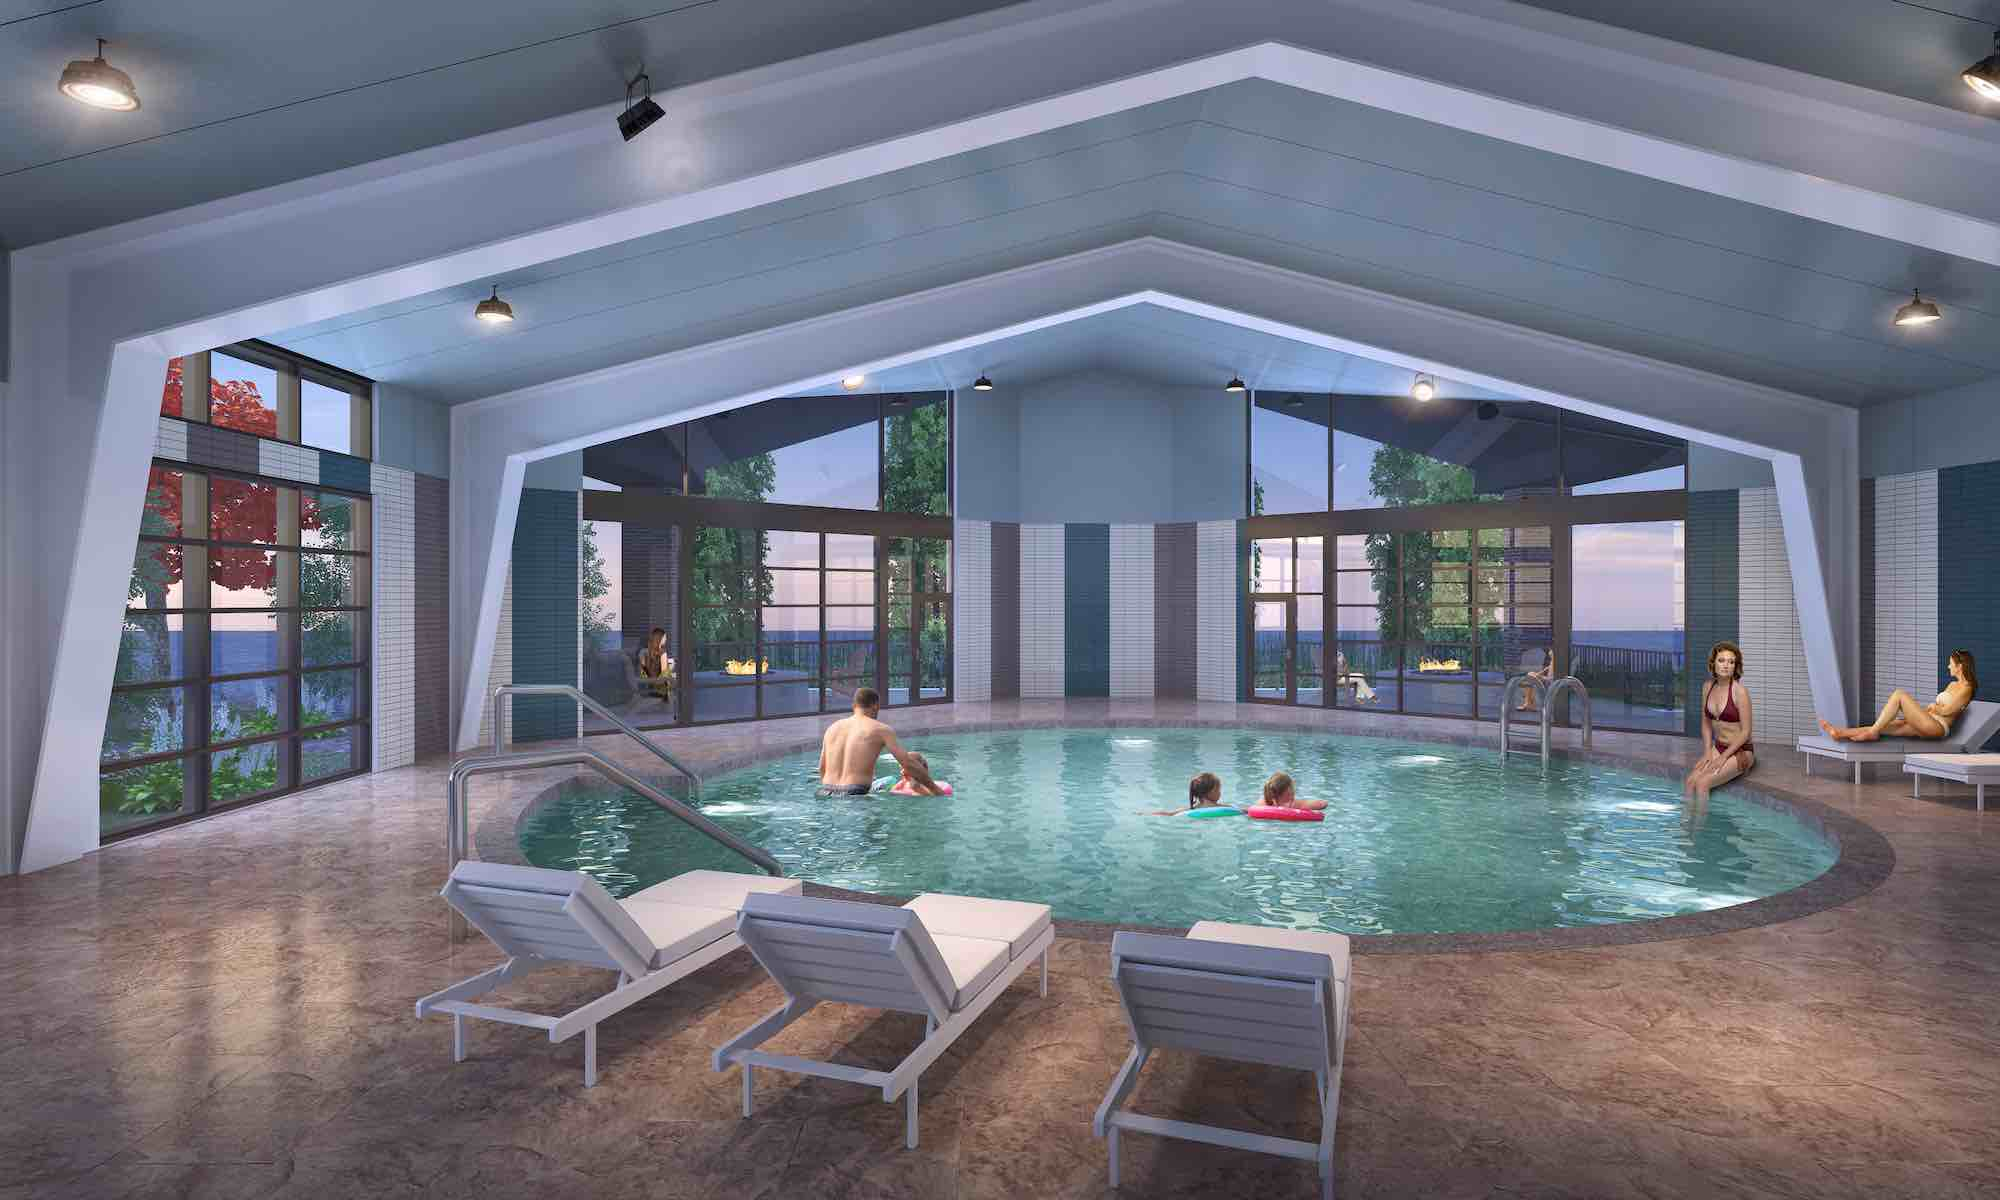 Sharonville Hotel Expands with Indoor Pool Facility